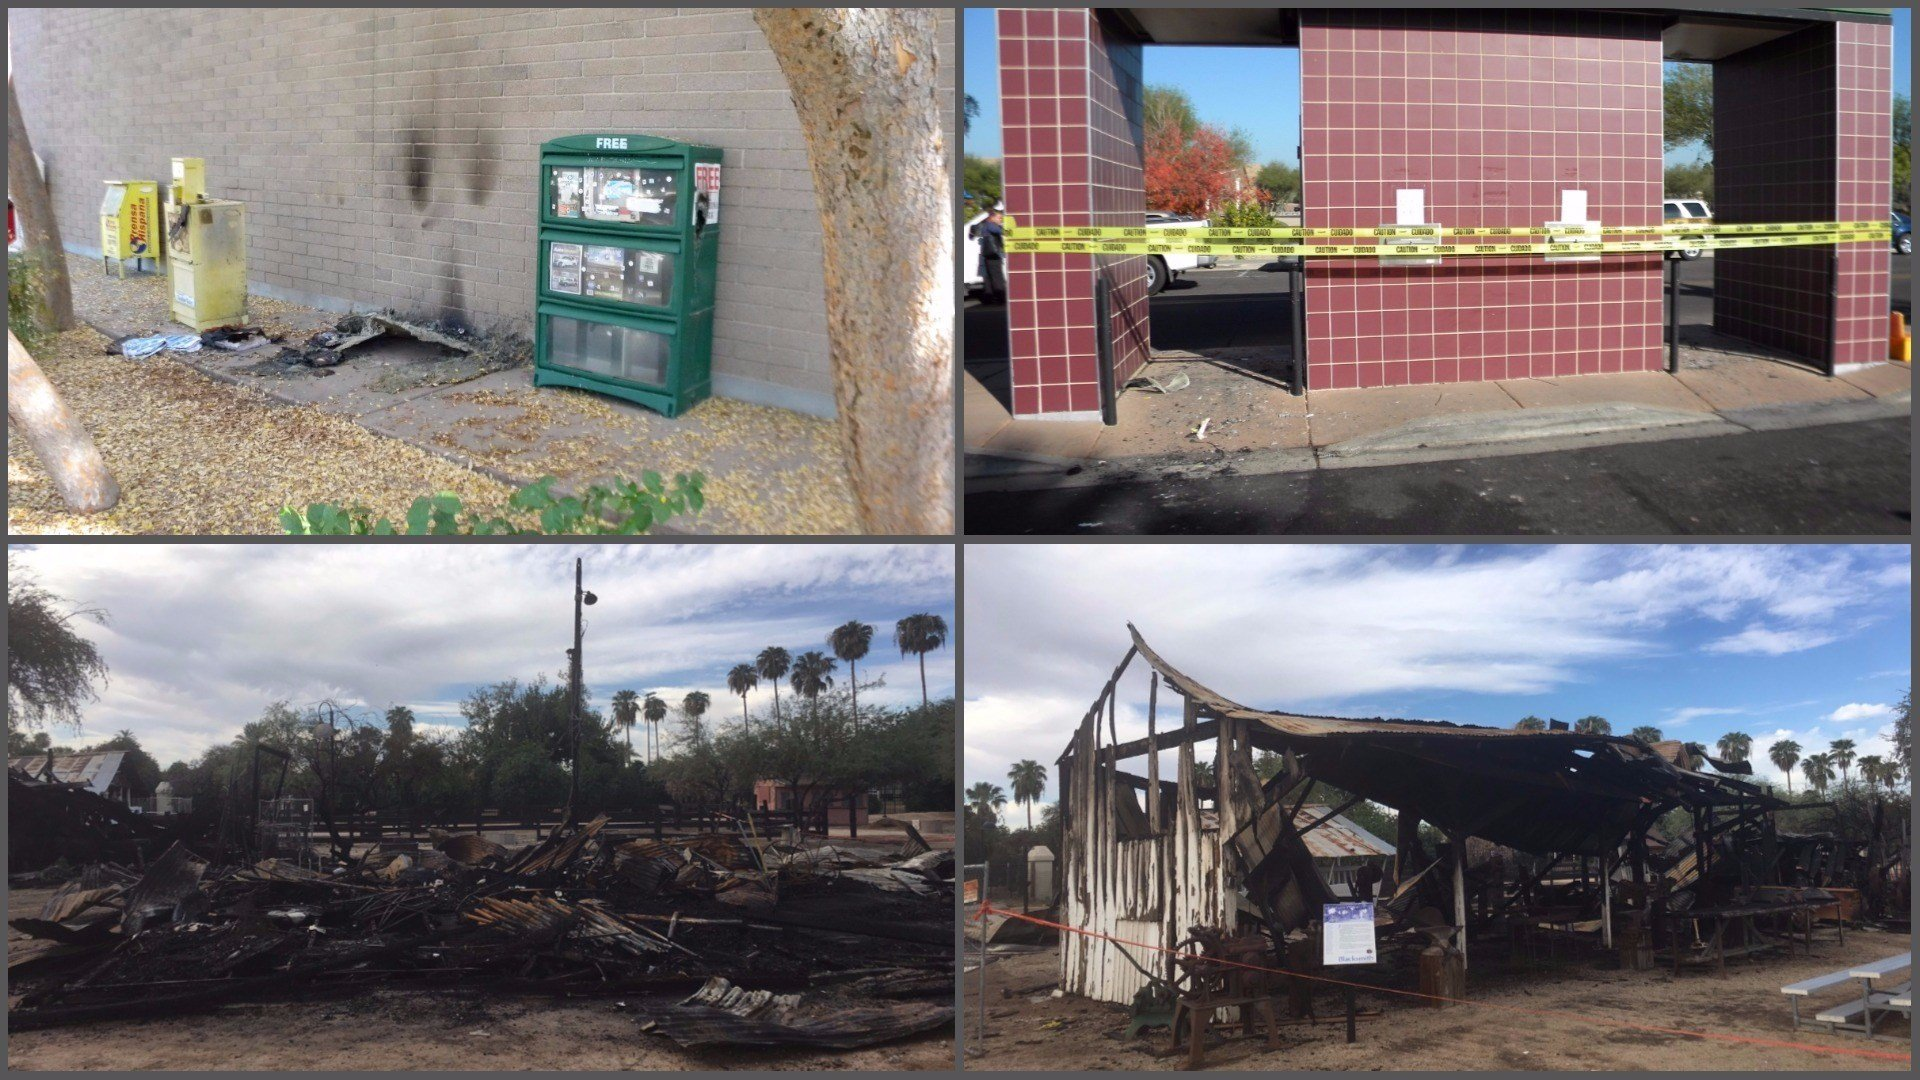 Two fires were set in December (top) after a series of fires in September (bottom). (Source: Glendale Police Department)